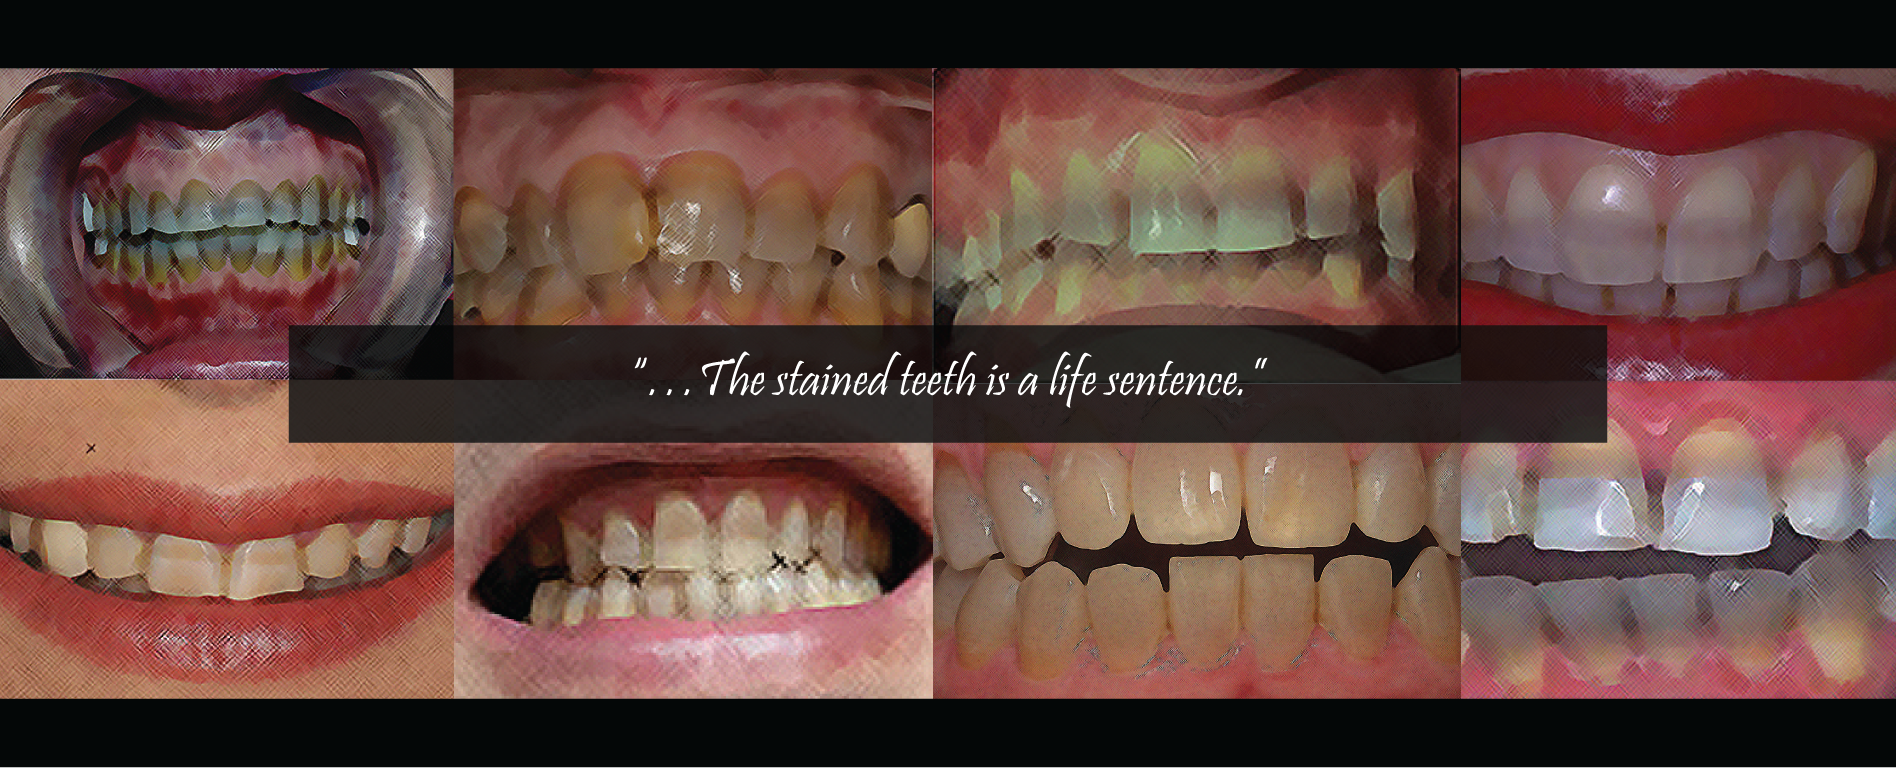 Tetracycline Teeth Staining, Dark Teeth, Grey Teeth, Dental Issues, Teeth Discoloration,Testimonial Quote